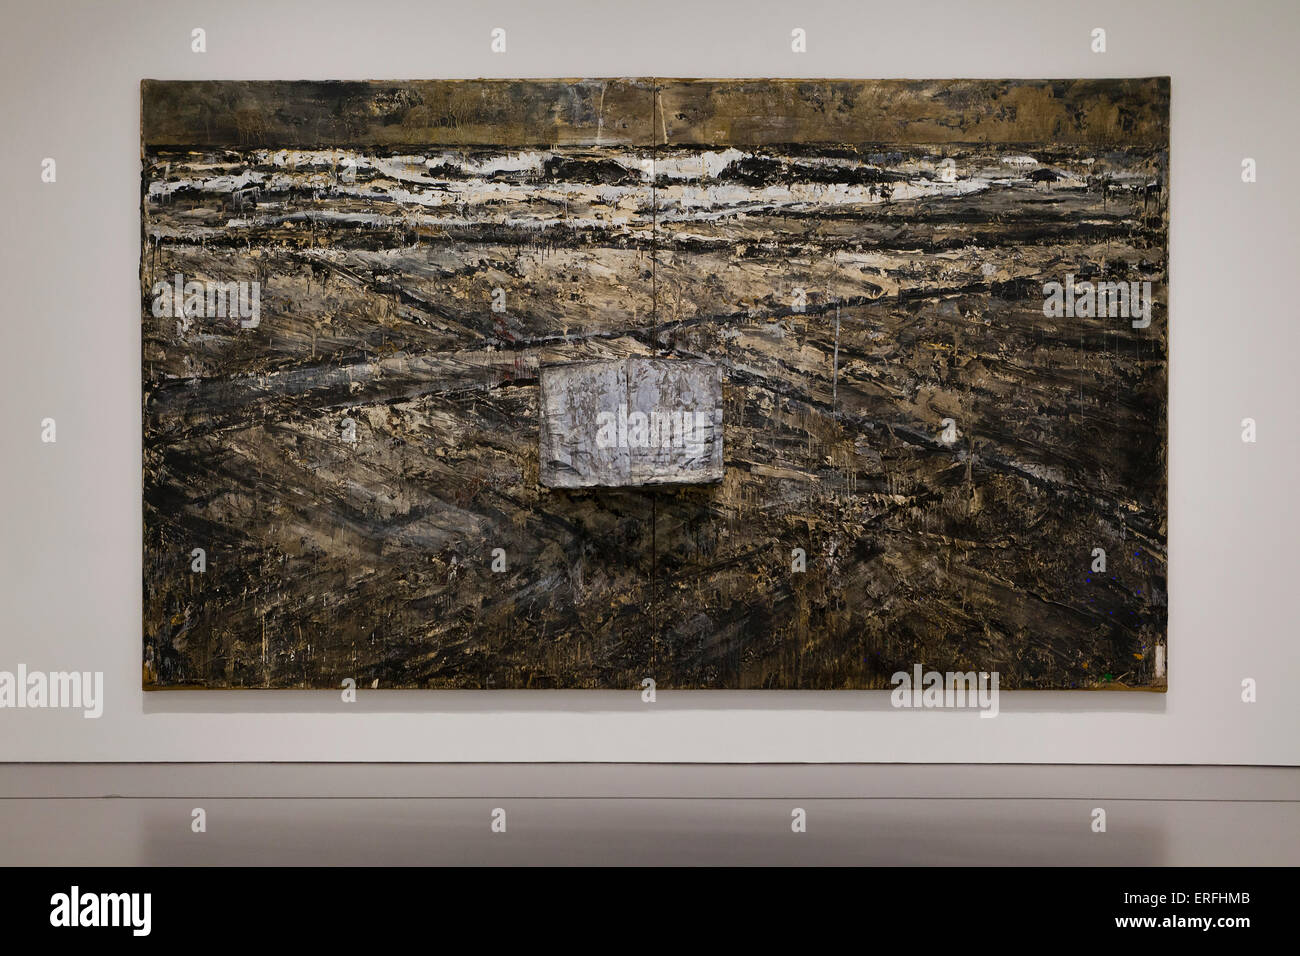 The Book by Anselm Kiefer, 1985 - Stock Image